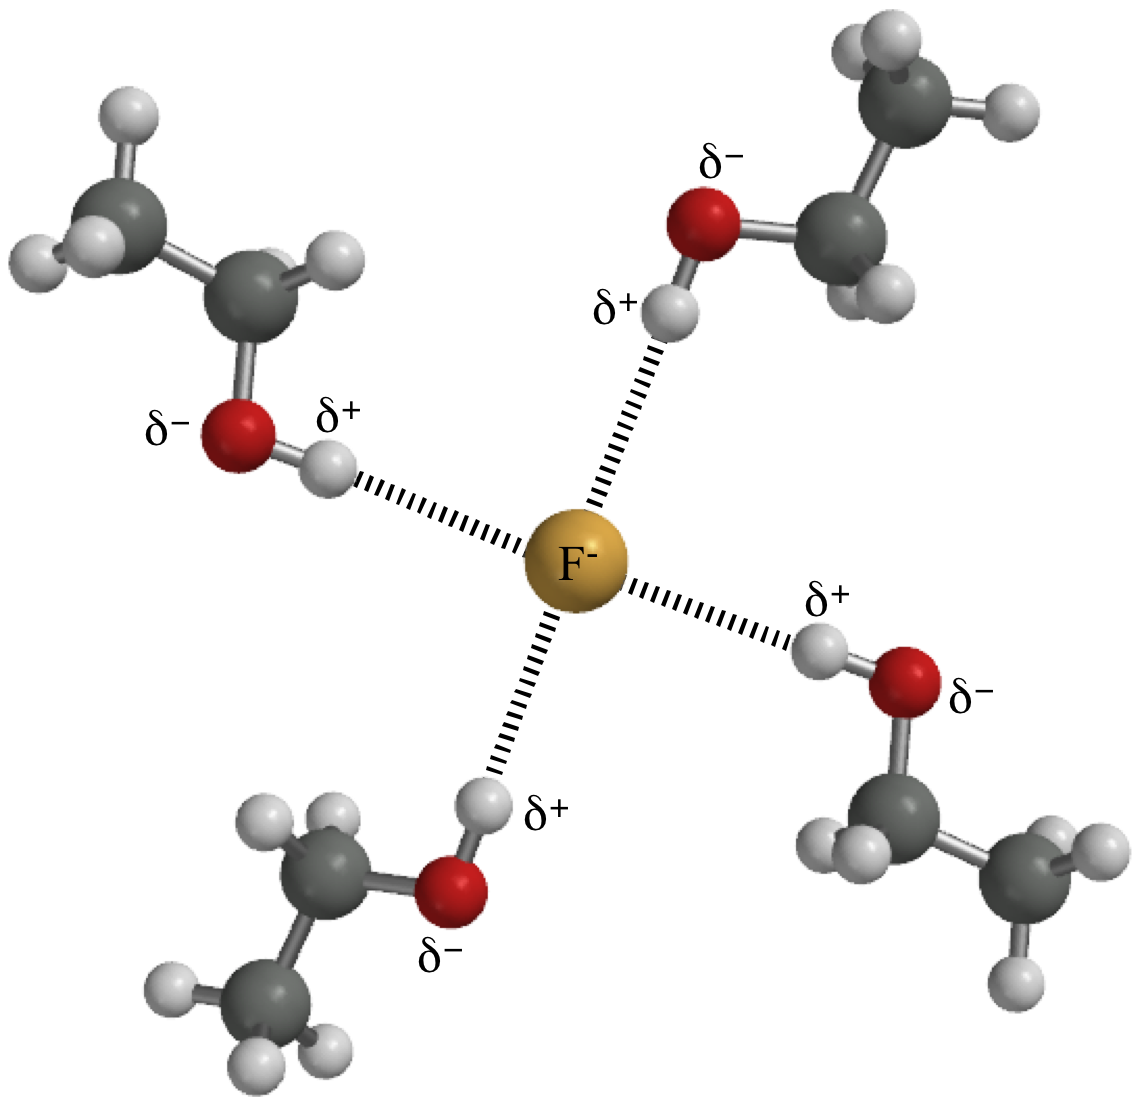 water and bonding A description of covalent bonding in a water molecule.